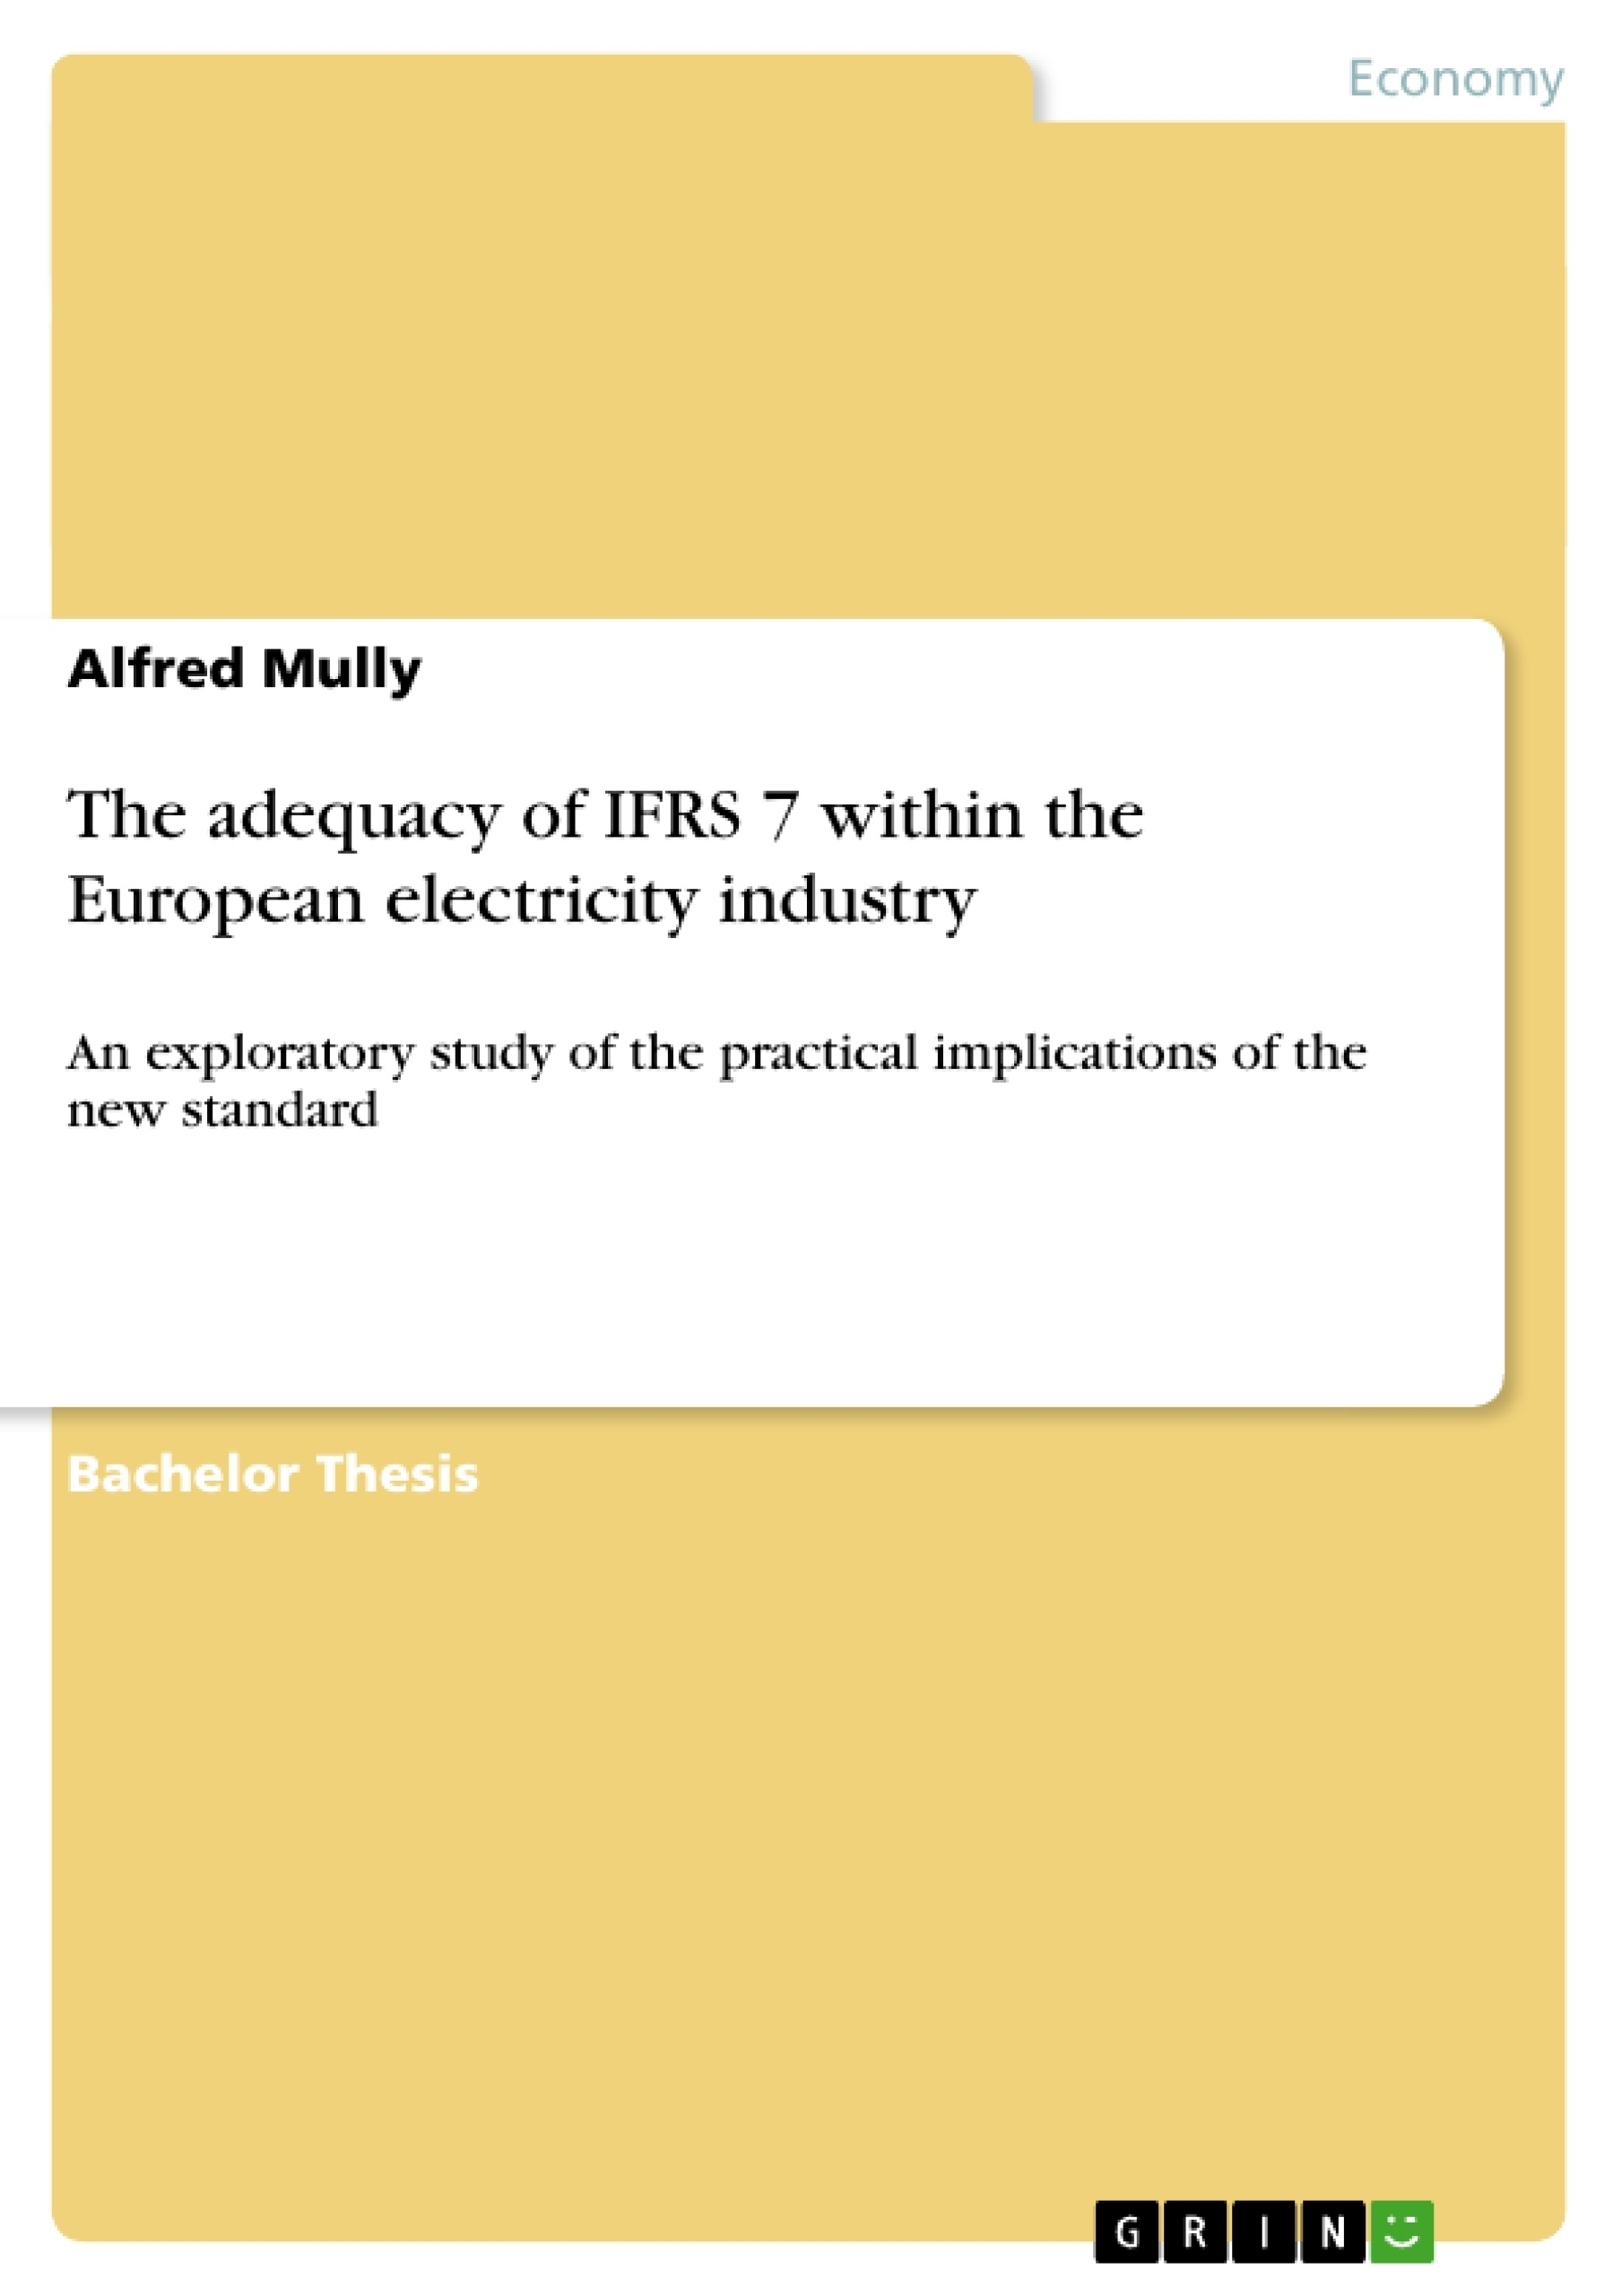 Title: The adequacy of IFRS 7 within the European electricity industry